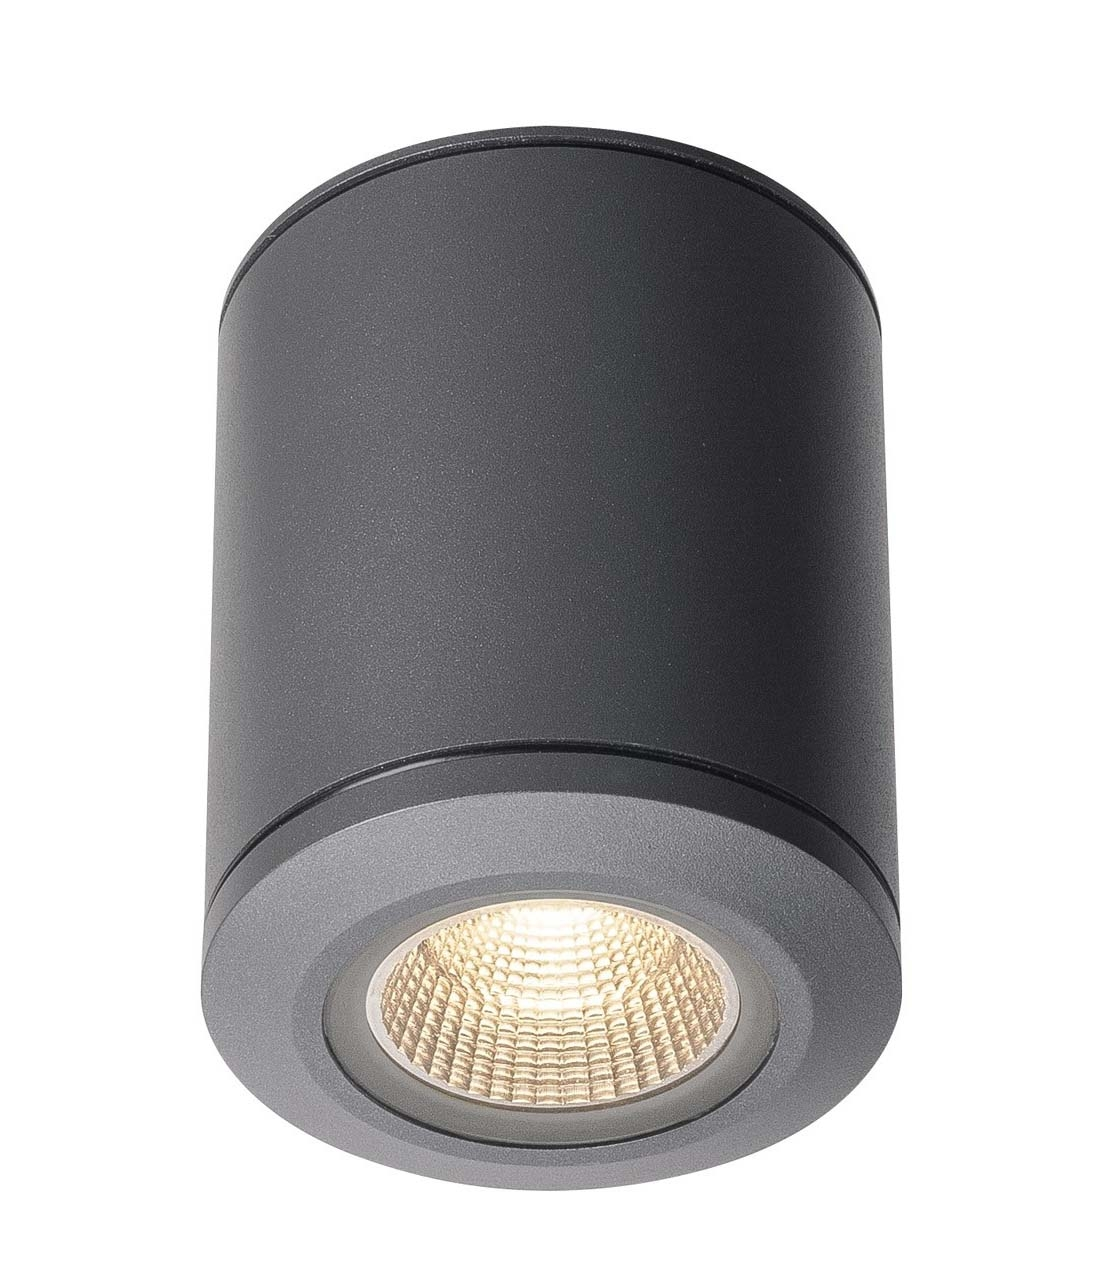 Lhigh Output Surface Mounted Downlight Ip44 Finished In